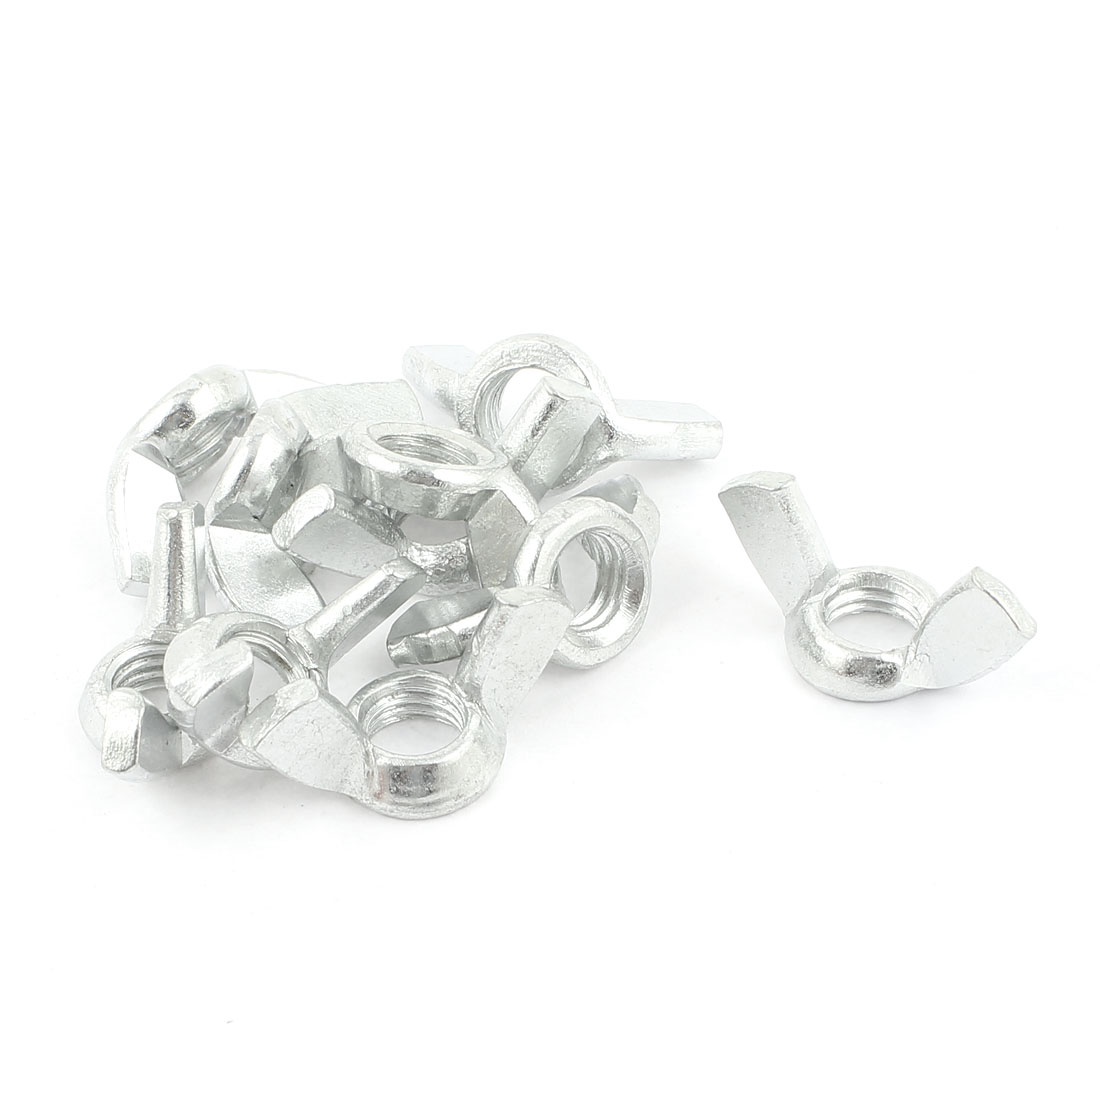 10 Pcs Silver Tone Metal Quick-Release Wingnut M12 12mm